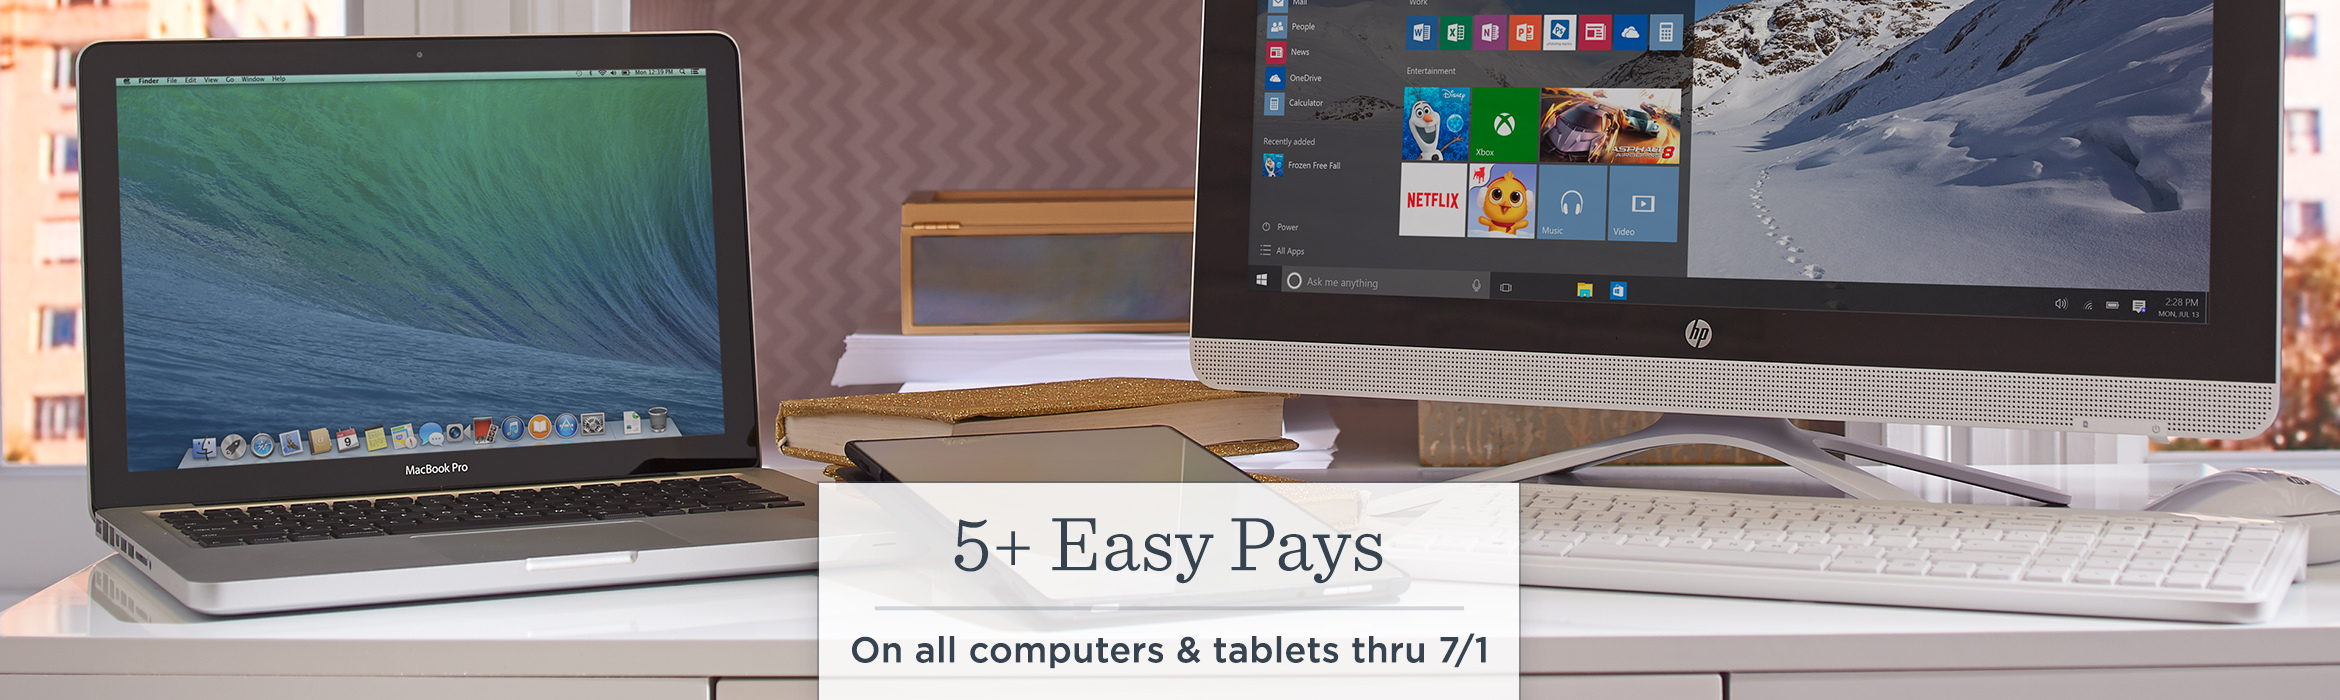 5+ Easy Pays.  On all computers & tablets thru 7/1